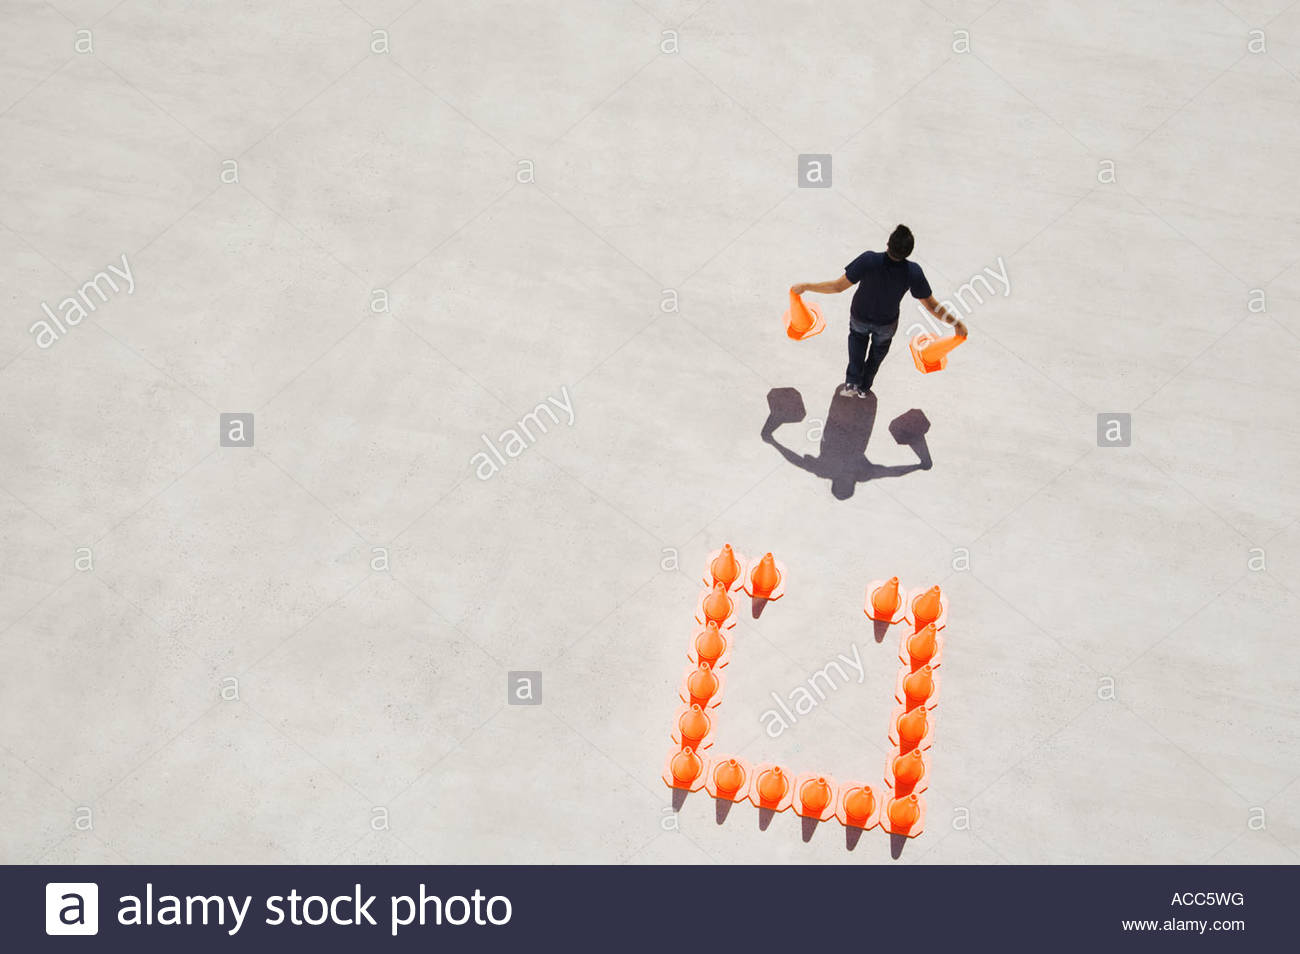 Man walking away from box of traffic cones with two - Stock Image